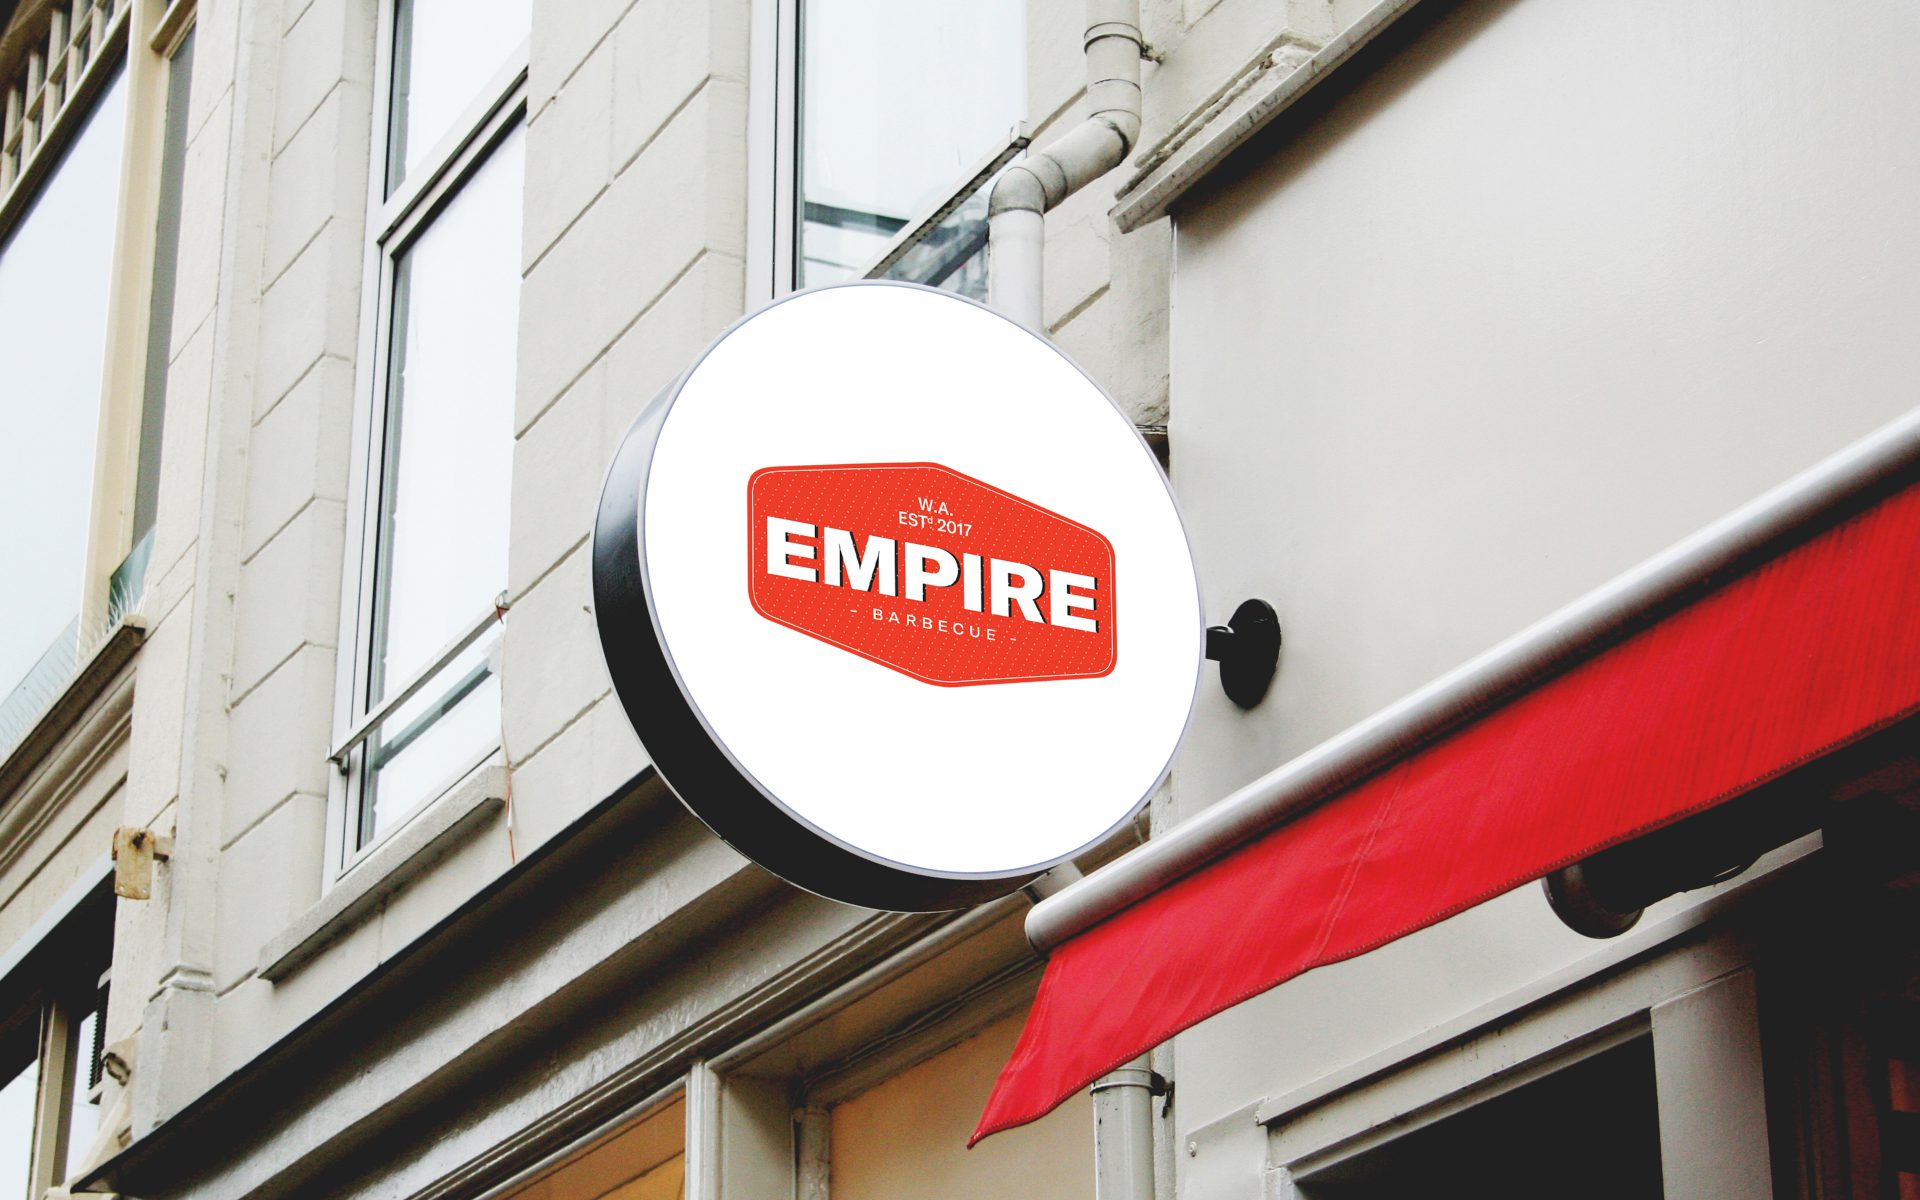 Empire BBQ brand logo on outdoor signage